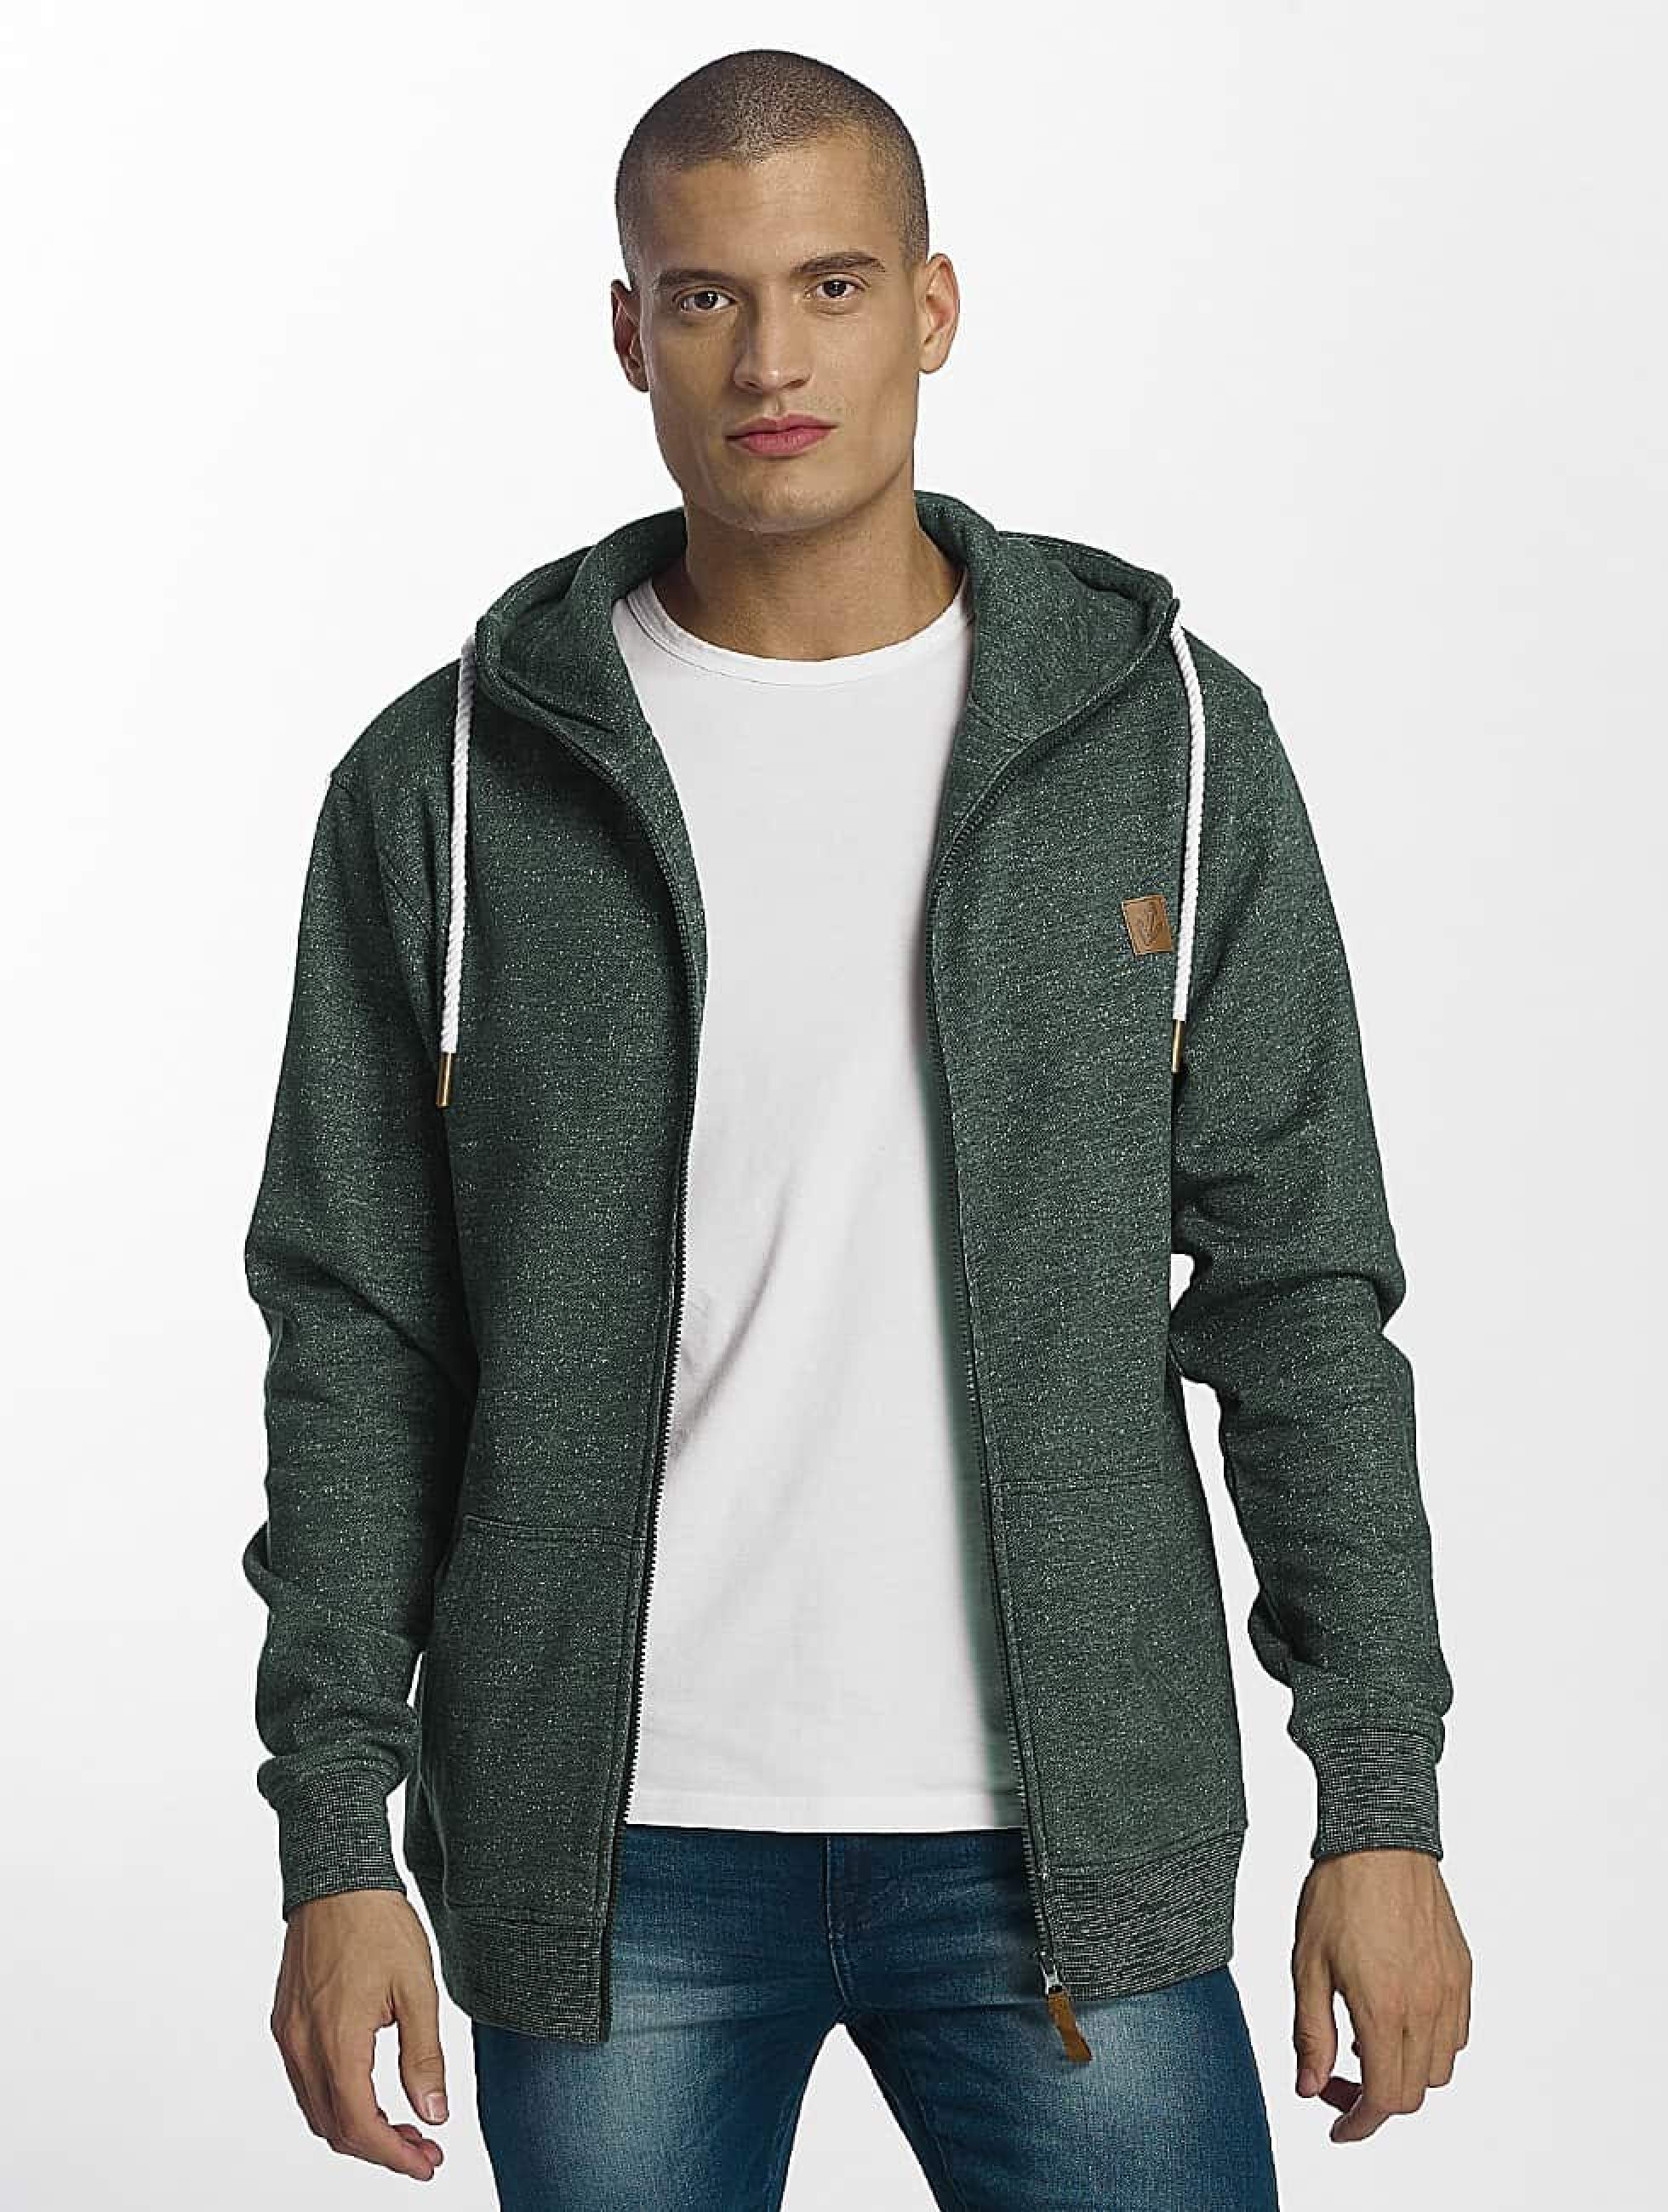 Platinum Anchor | Hookipa vert Homme Sweat capuche zippé